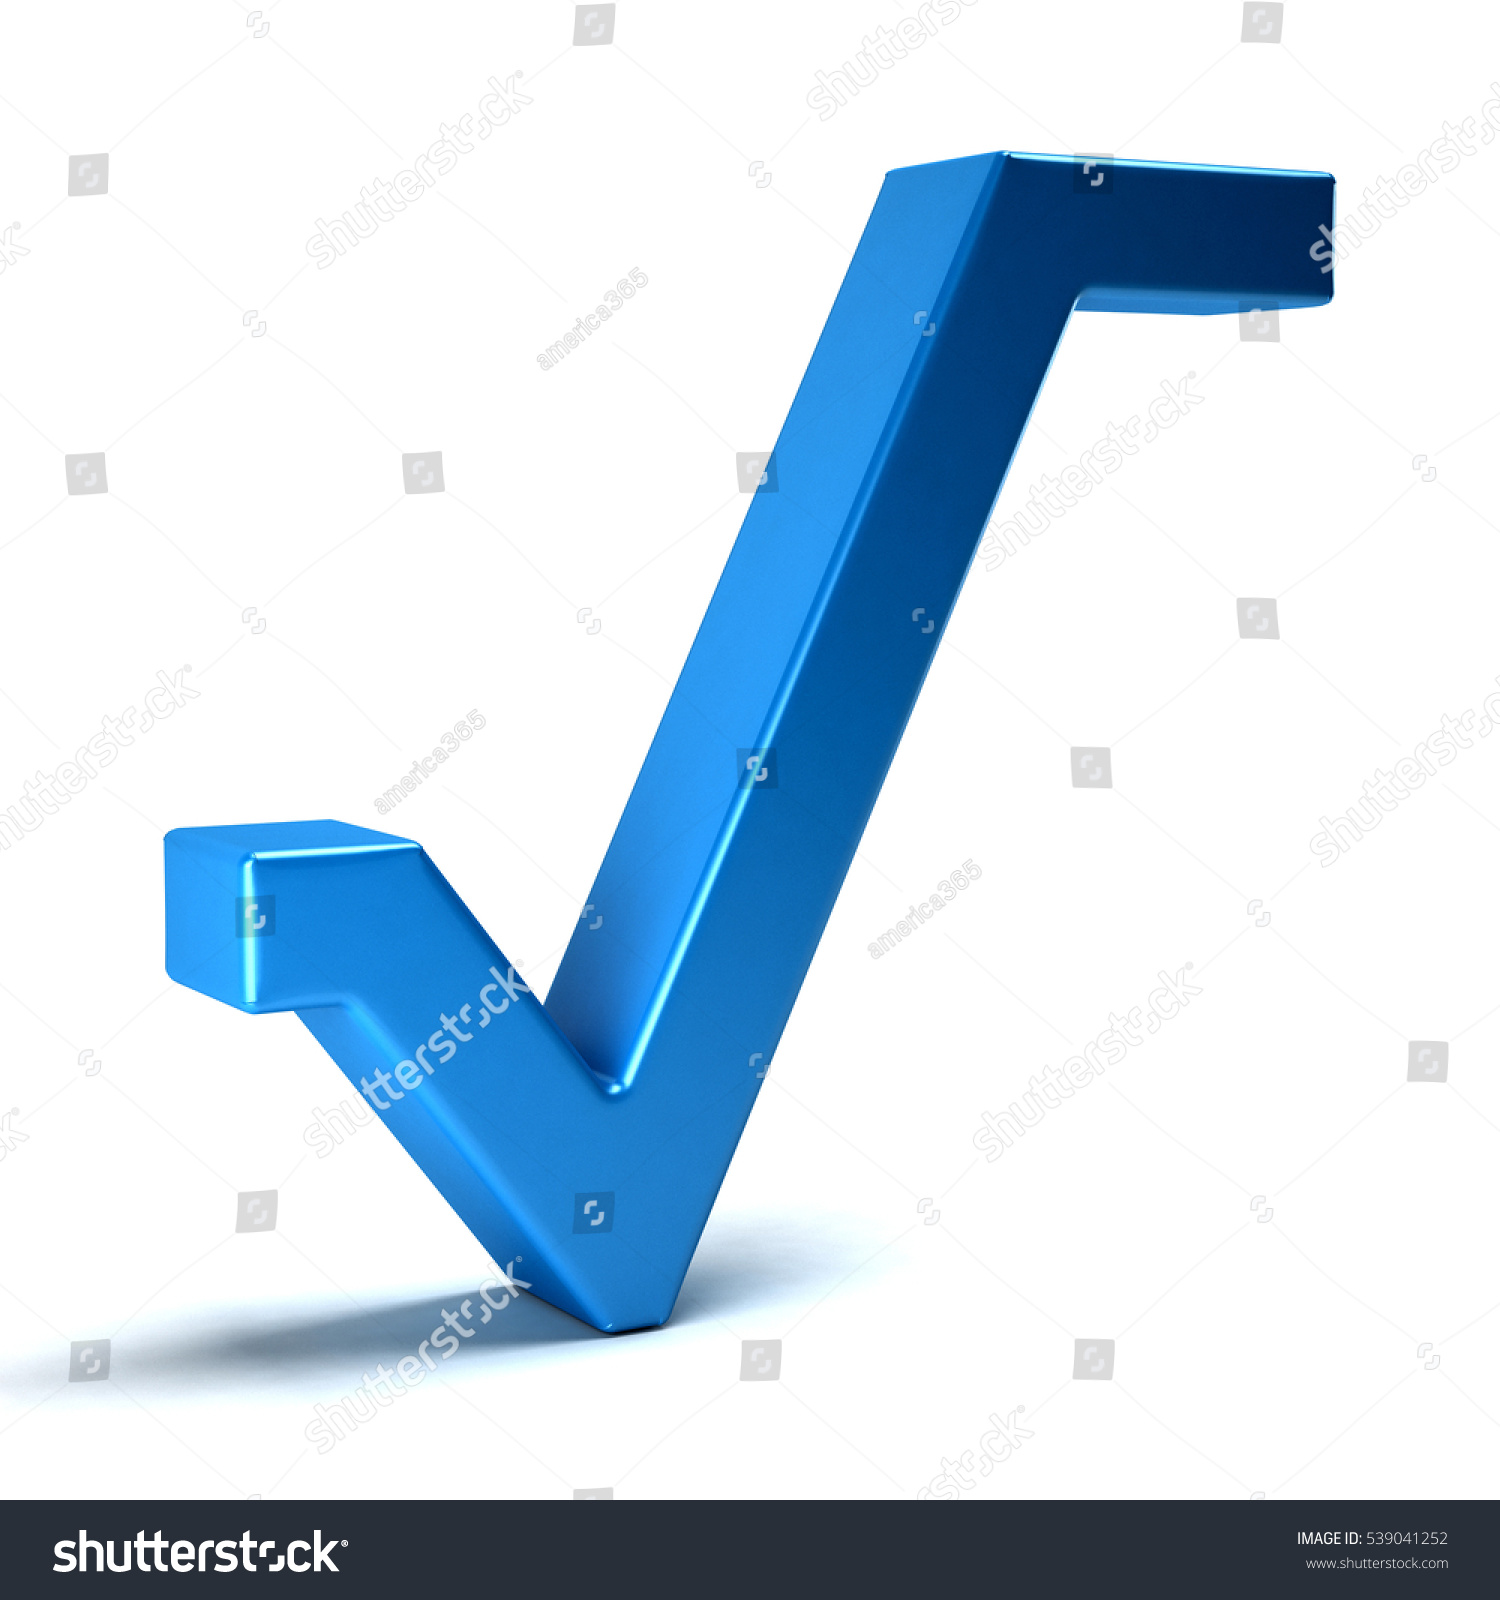 Royalty Free Stock Illustration Of Square Root Math Symbol 3 D